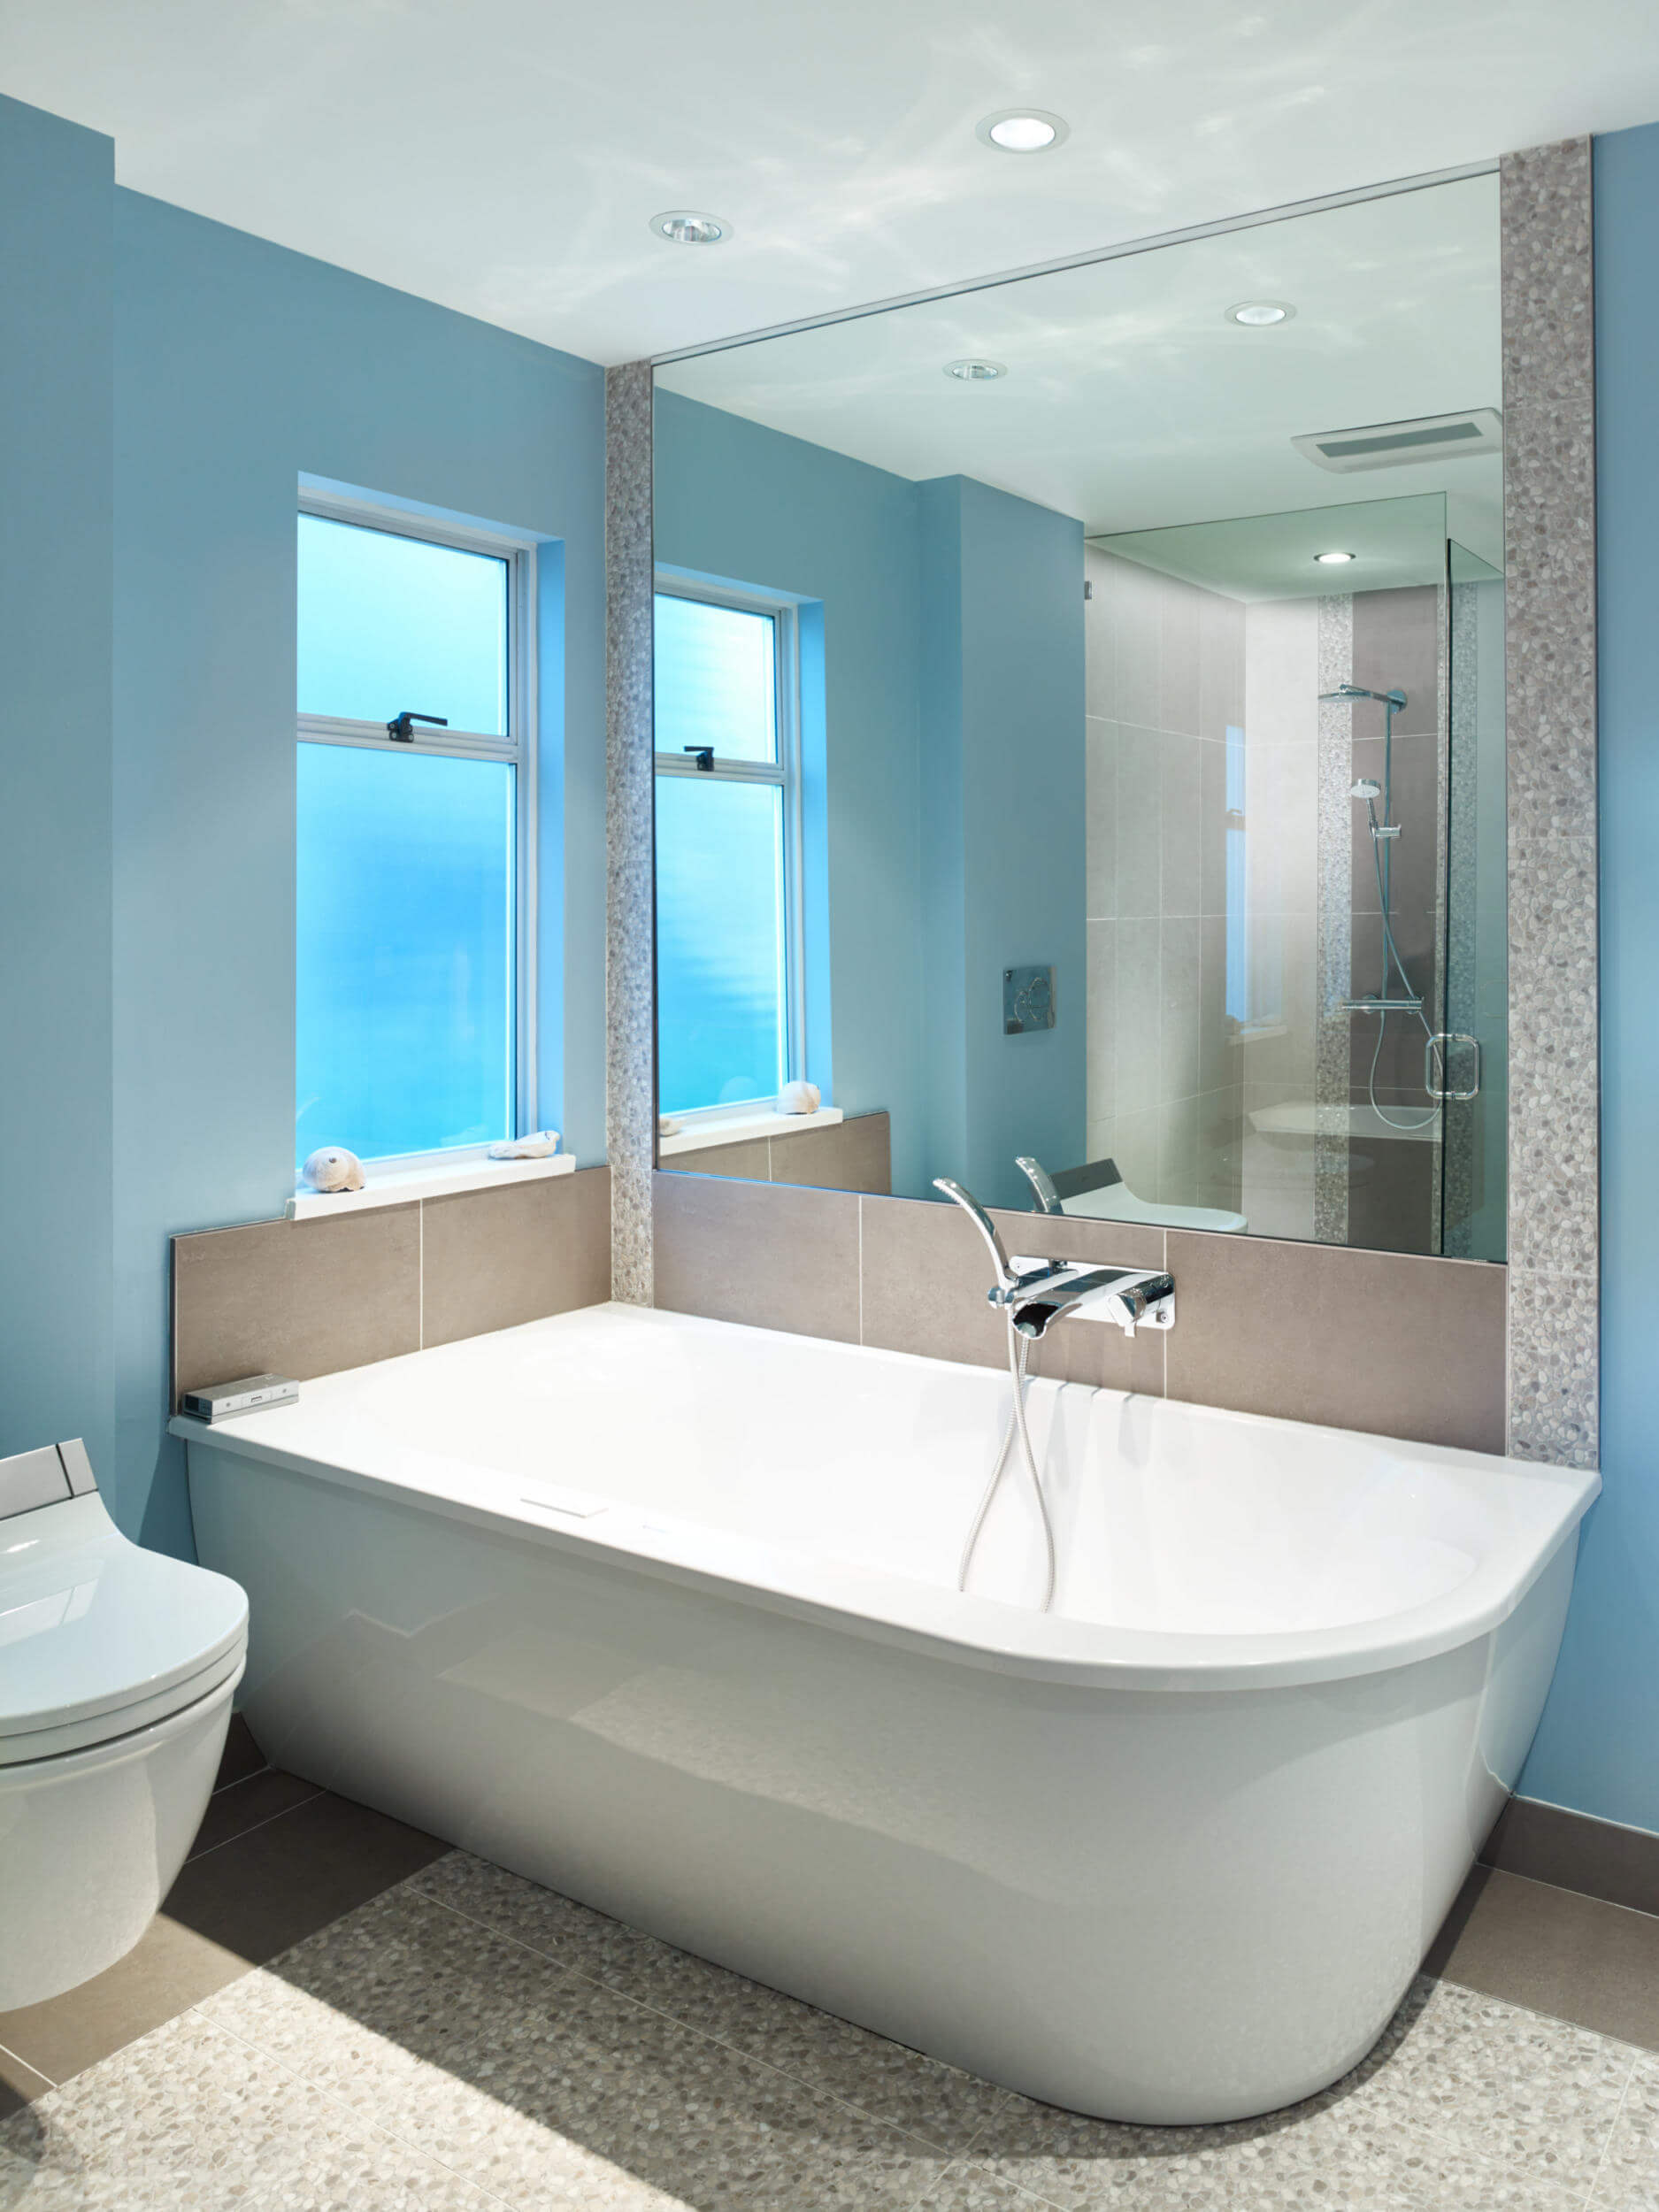 blau badezimmer bathroom renovation revision custom On badezimmer renovation